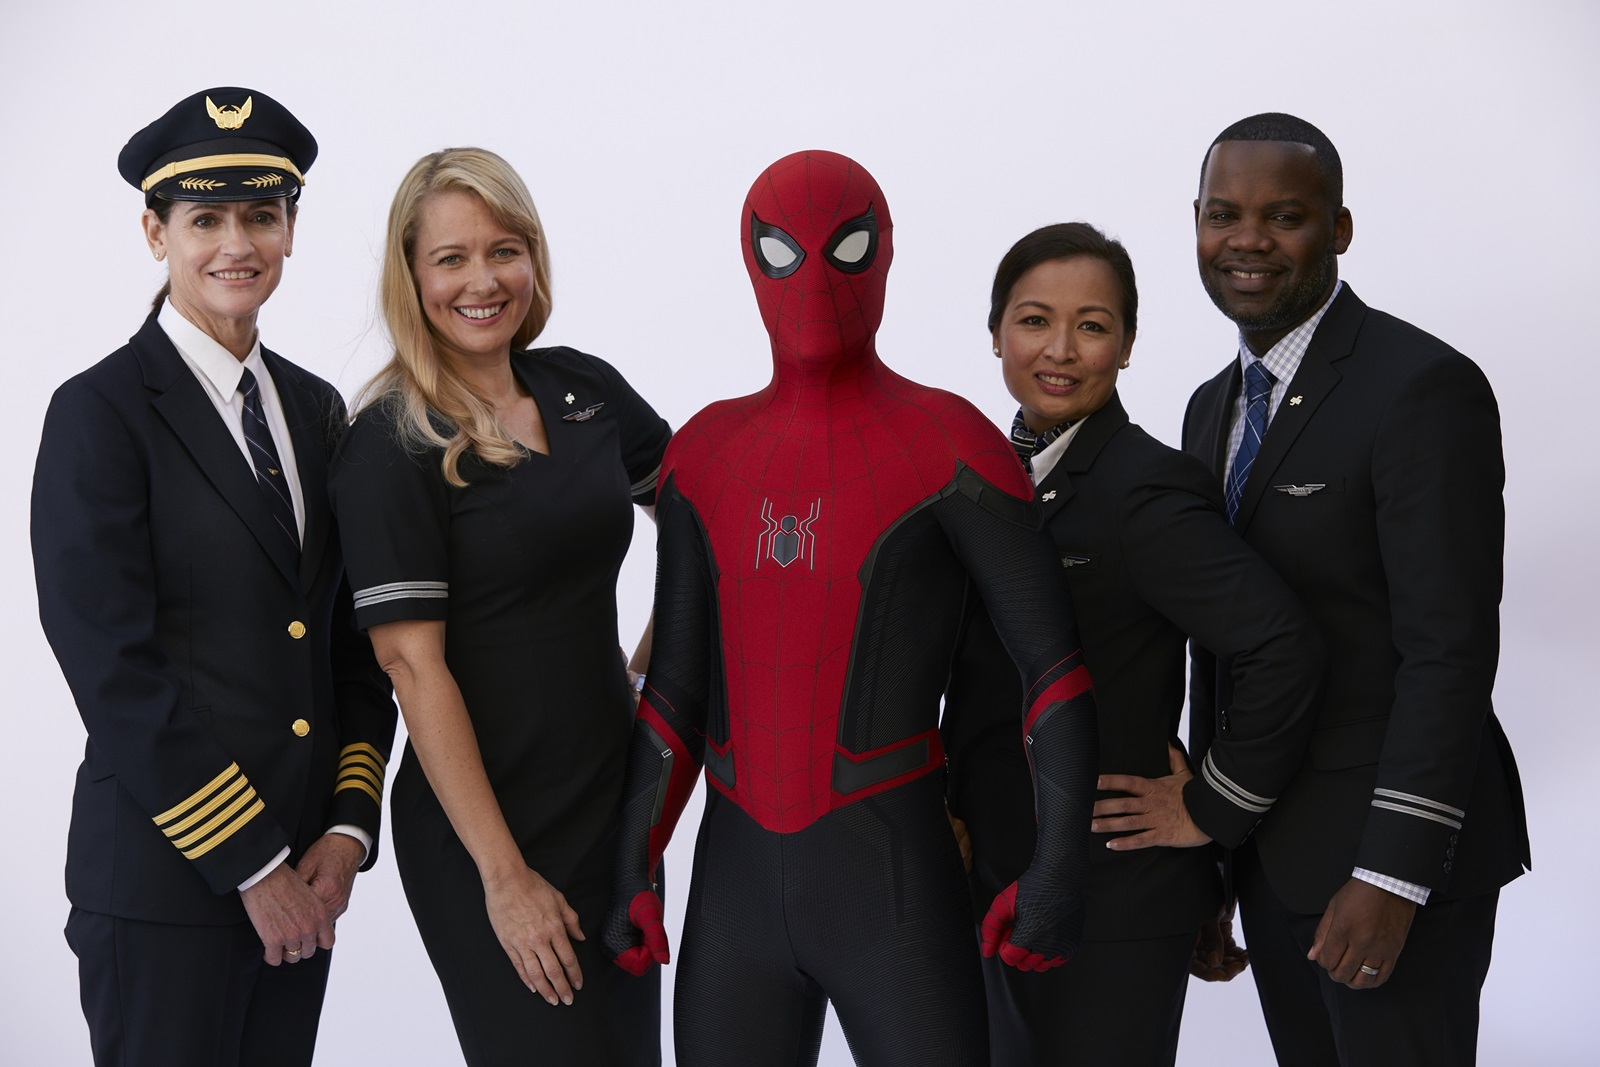 Spider-Man and United Crew